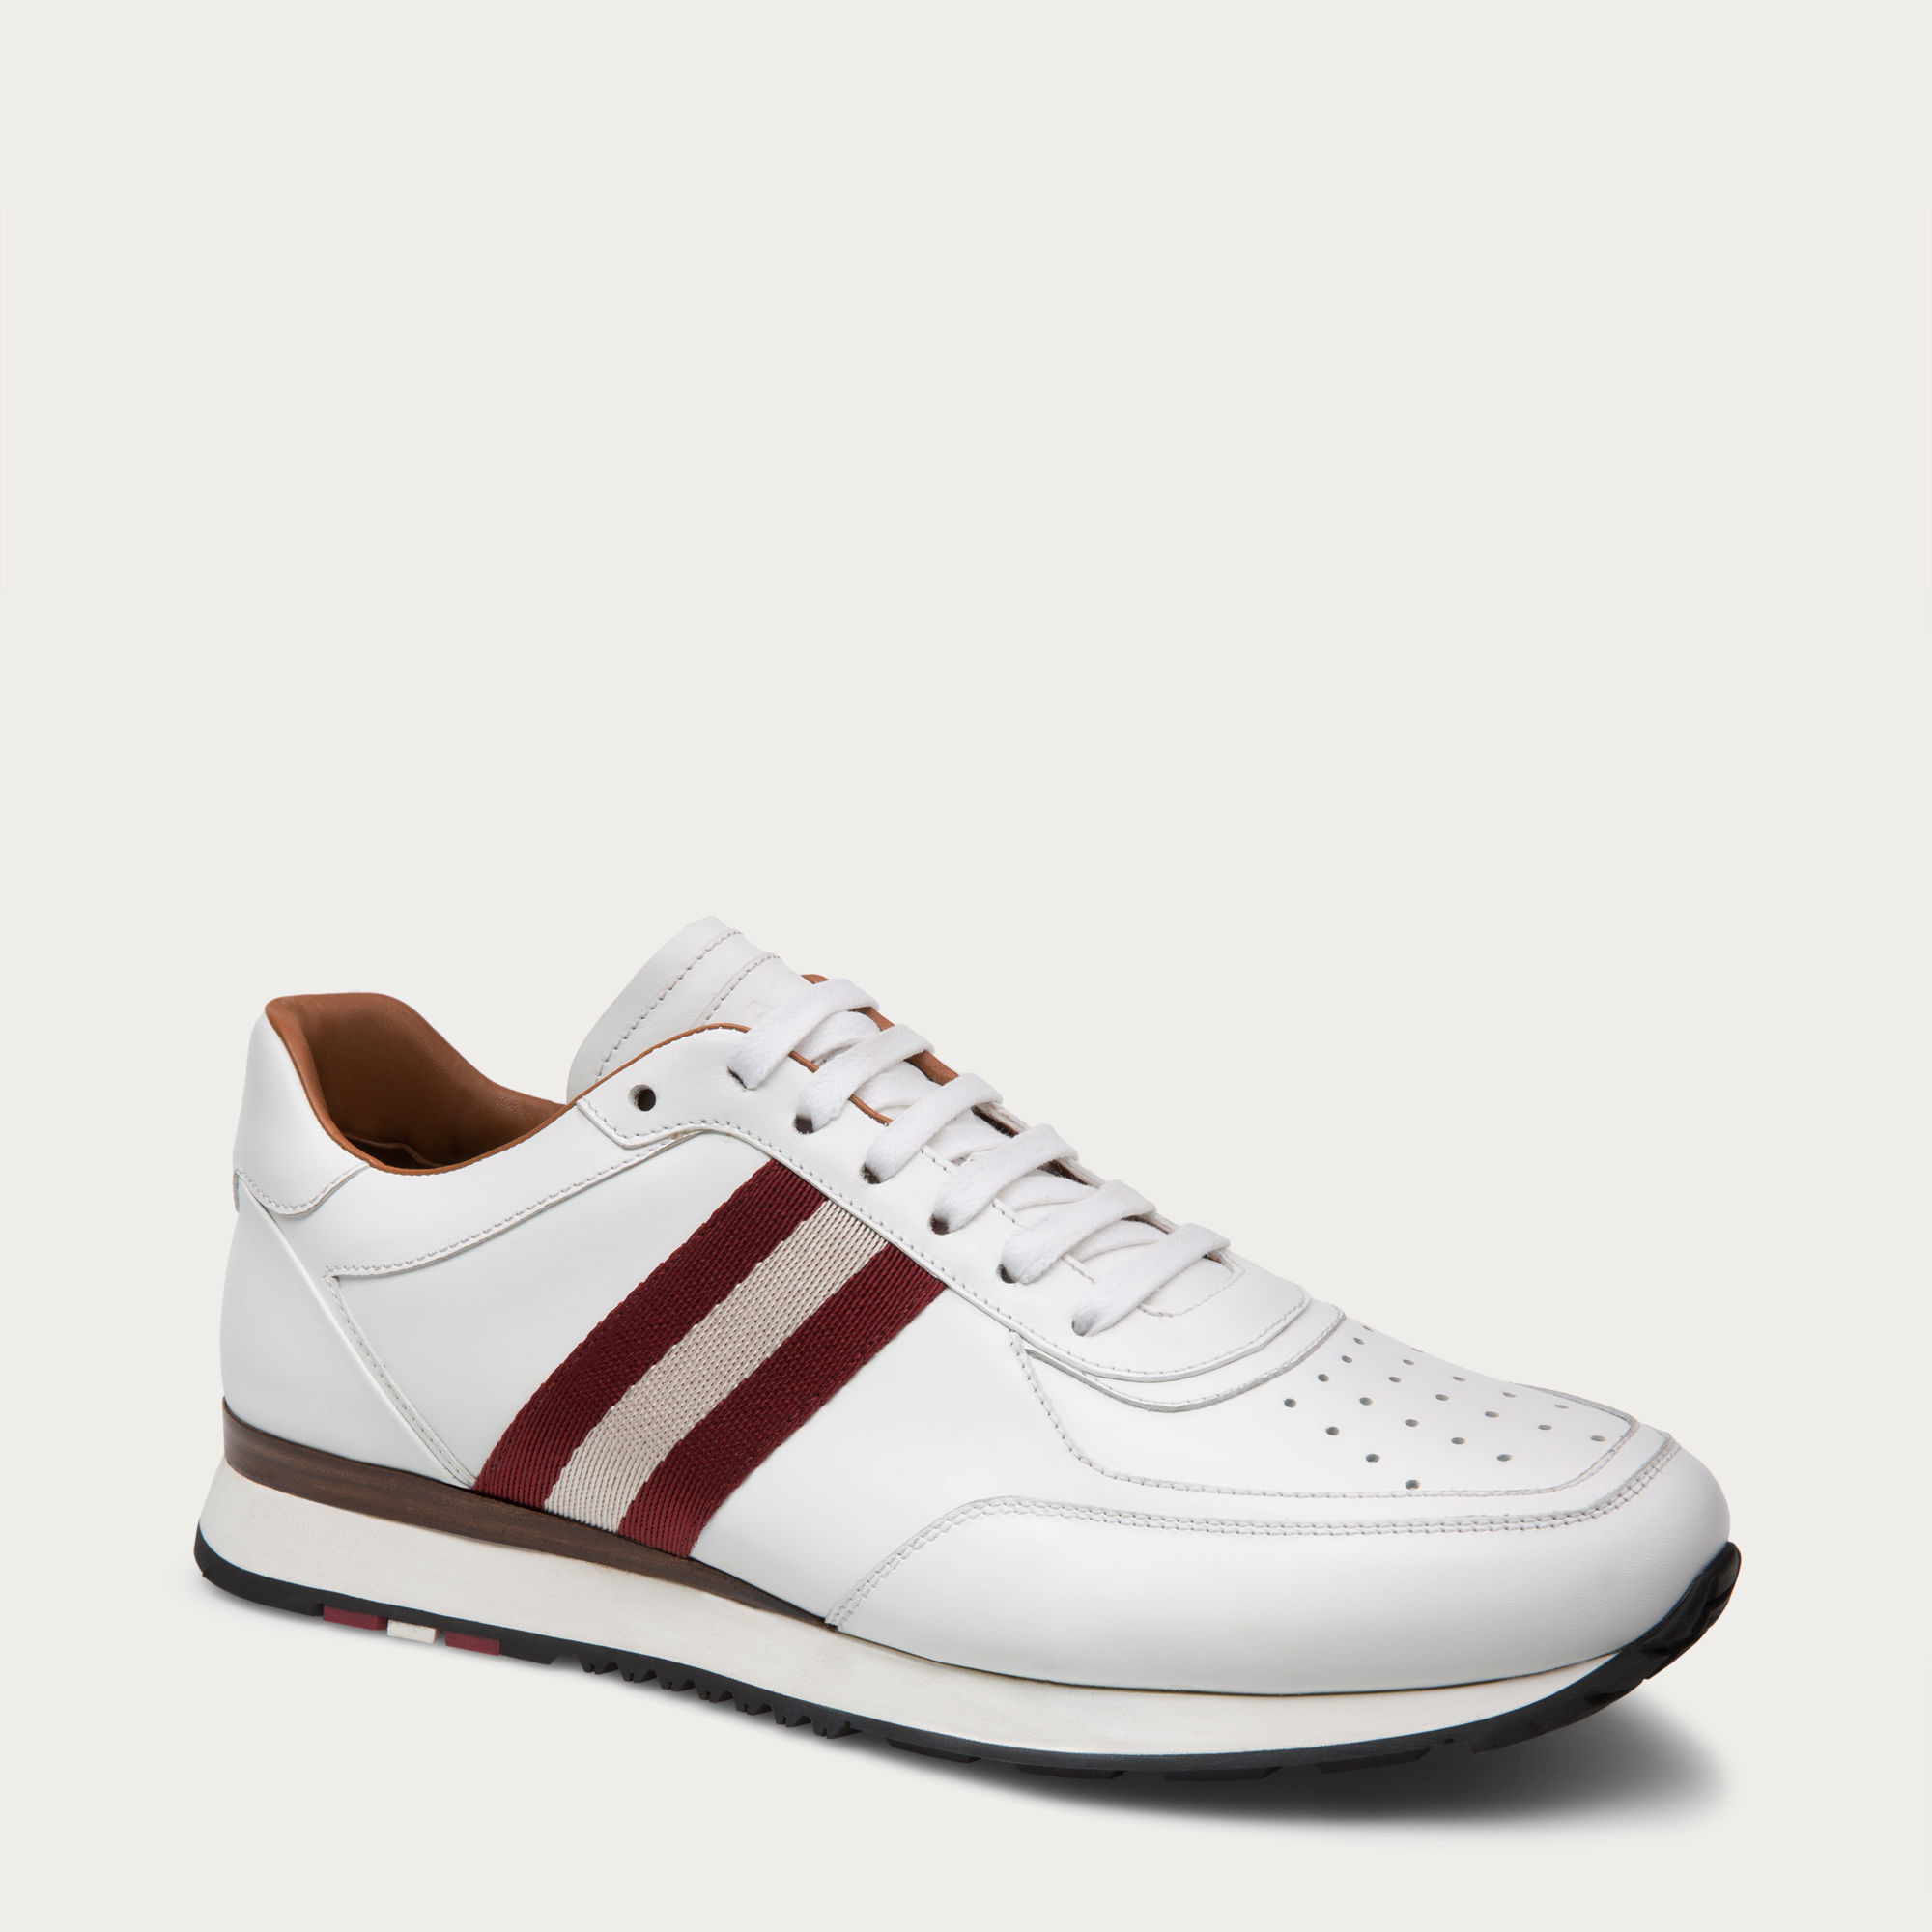 Red And White Bally Shoes